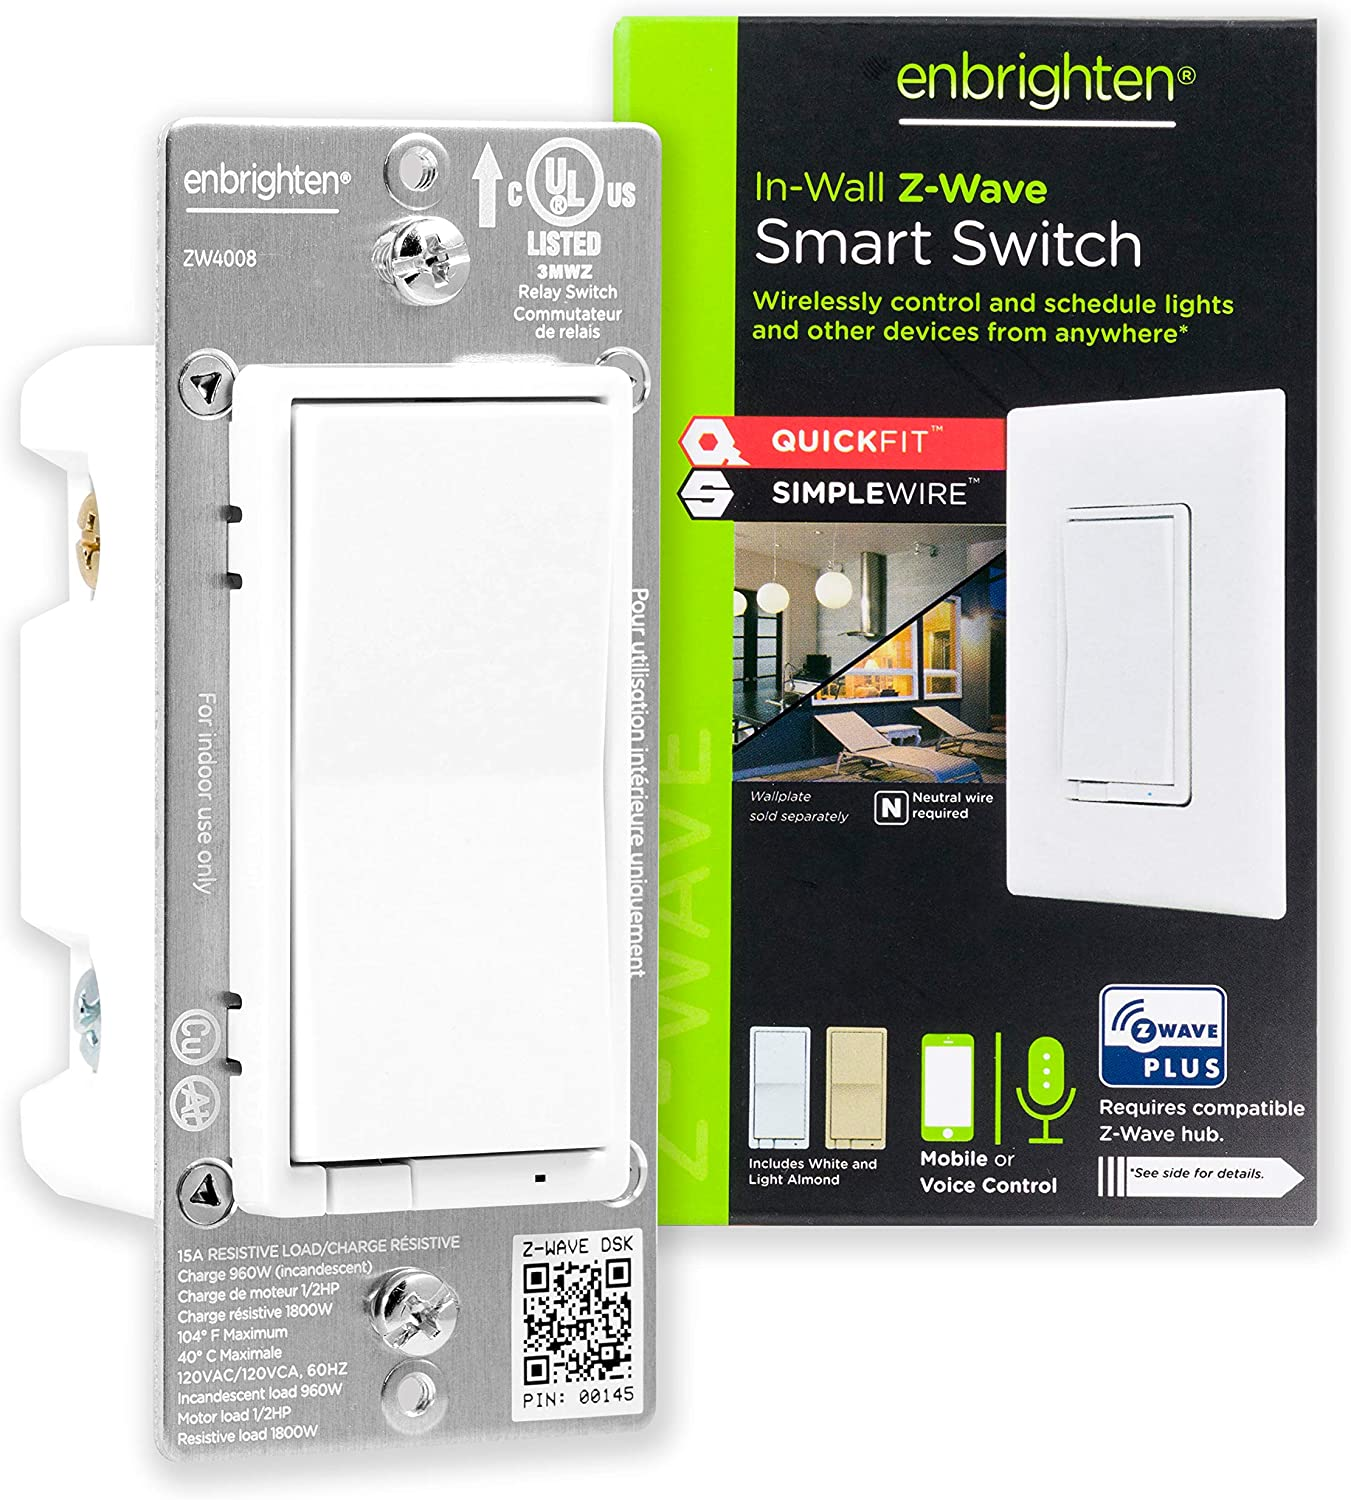 Enbrighten Z-Wave Smart Opening large release Limited price sale Rocker Light Switch and with QuickFit Si